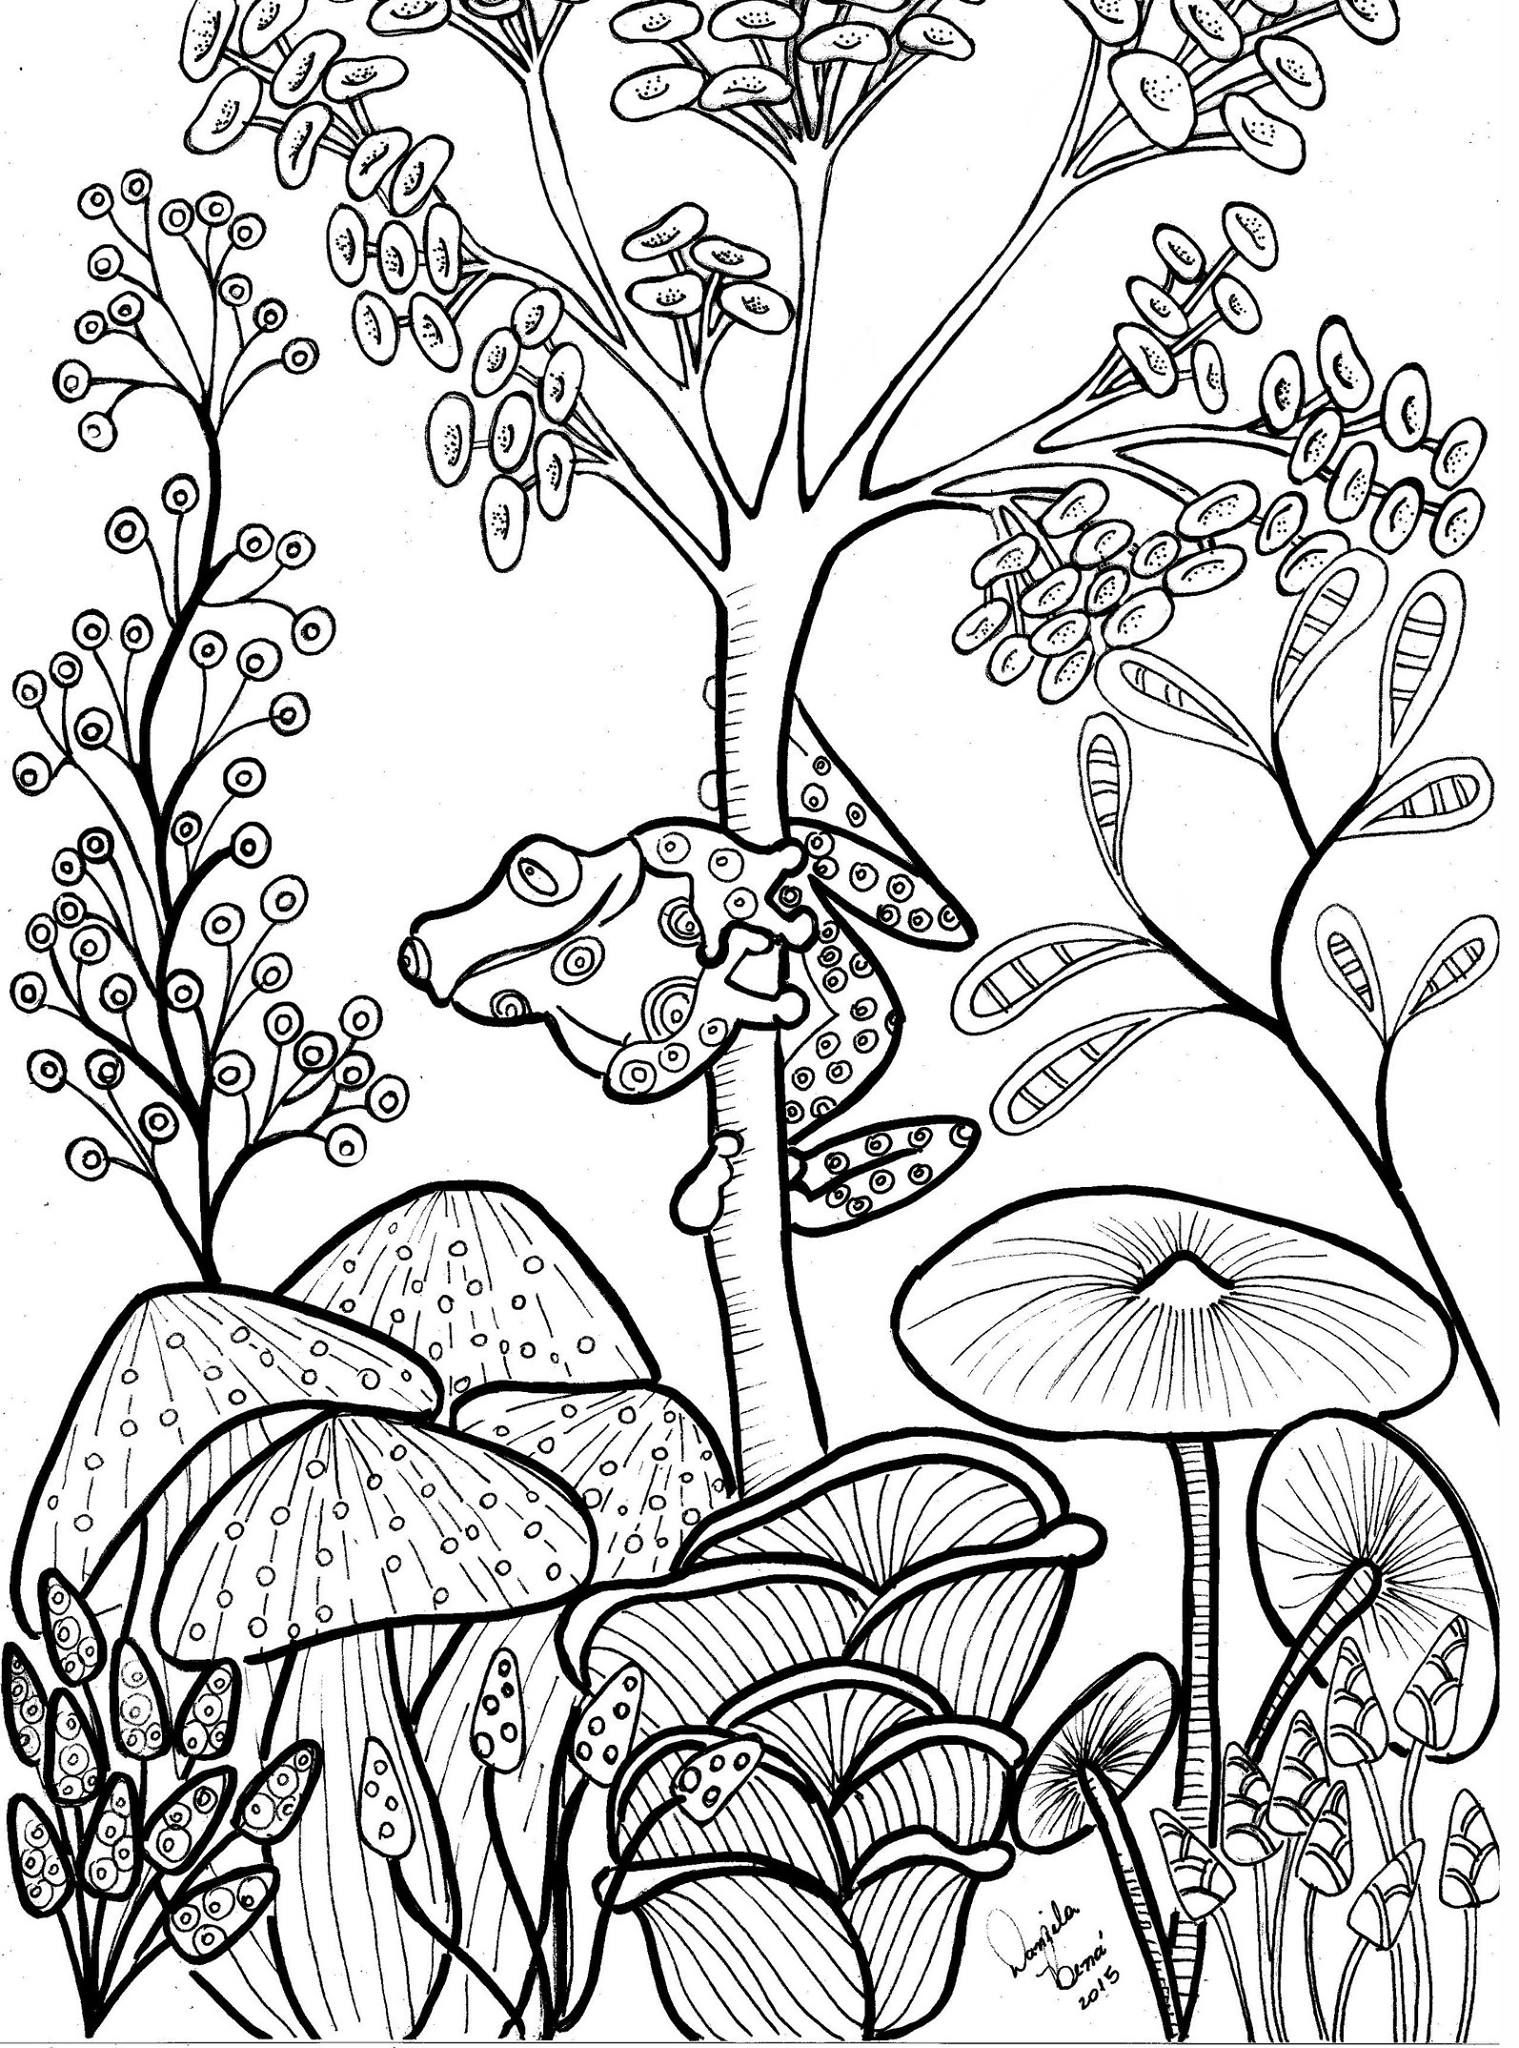 Cute tree frog and mushrooms Coloring page Floral